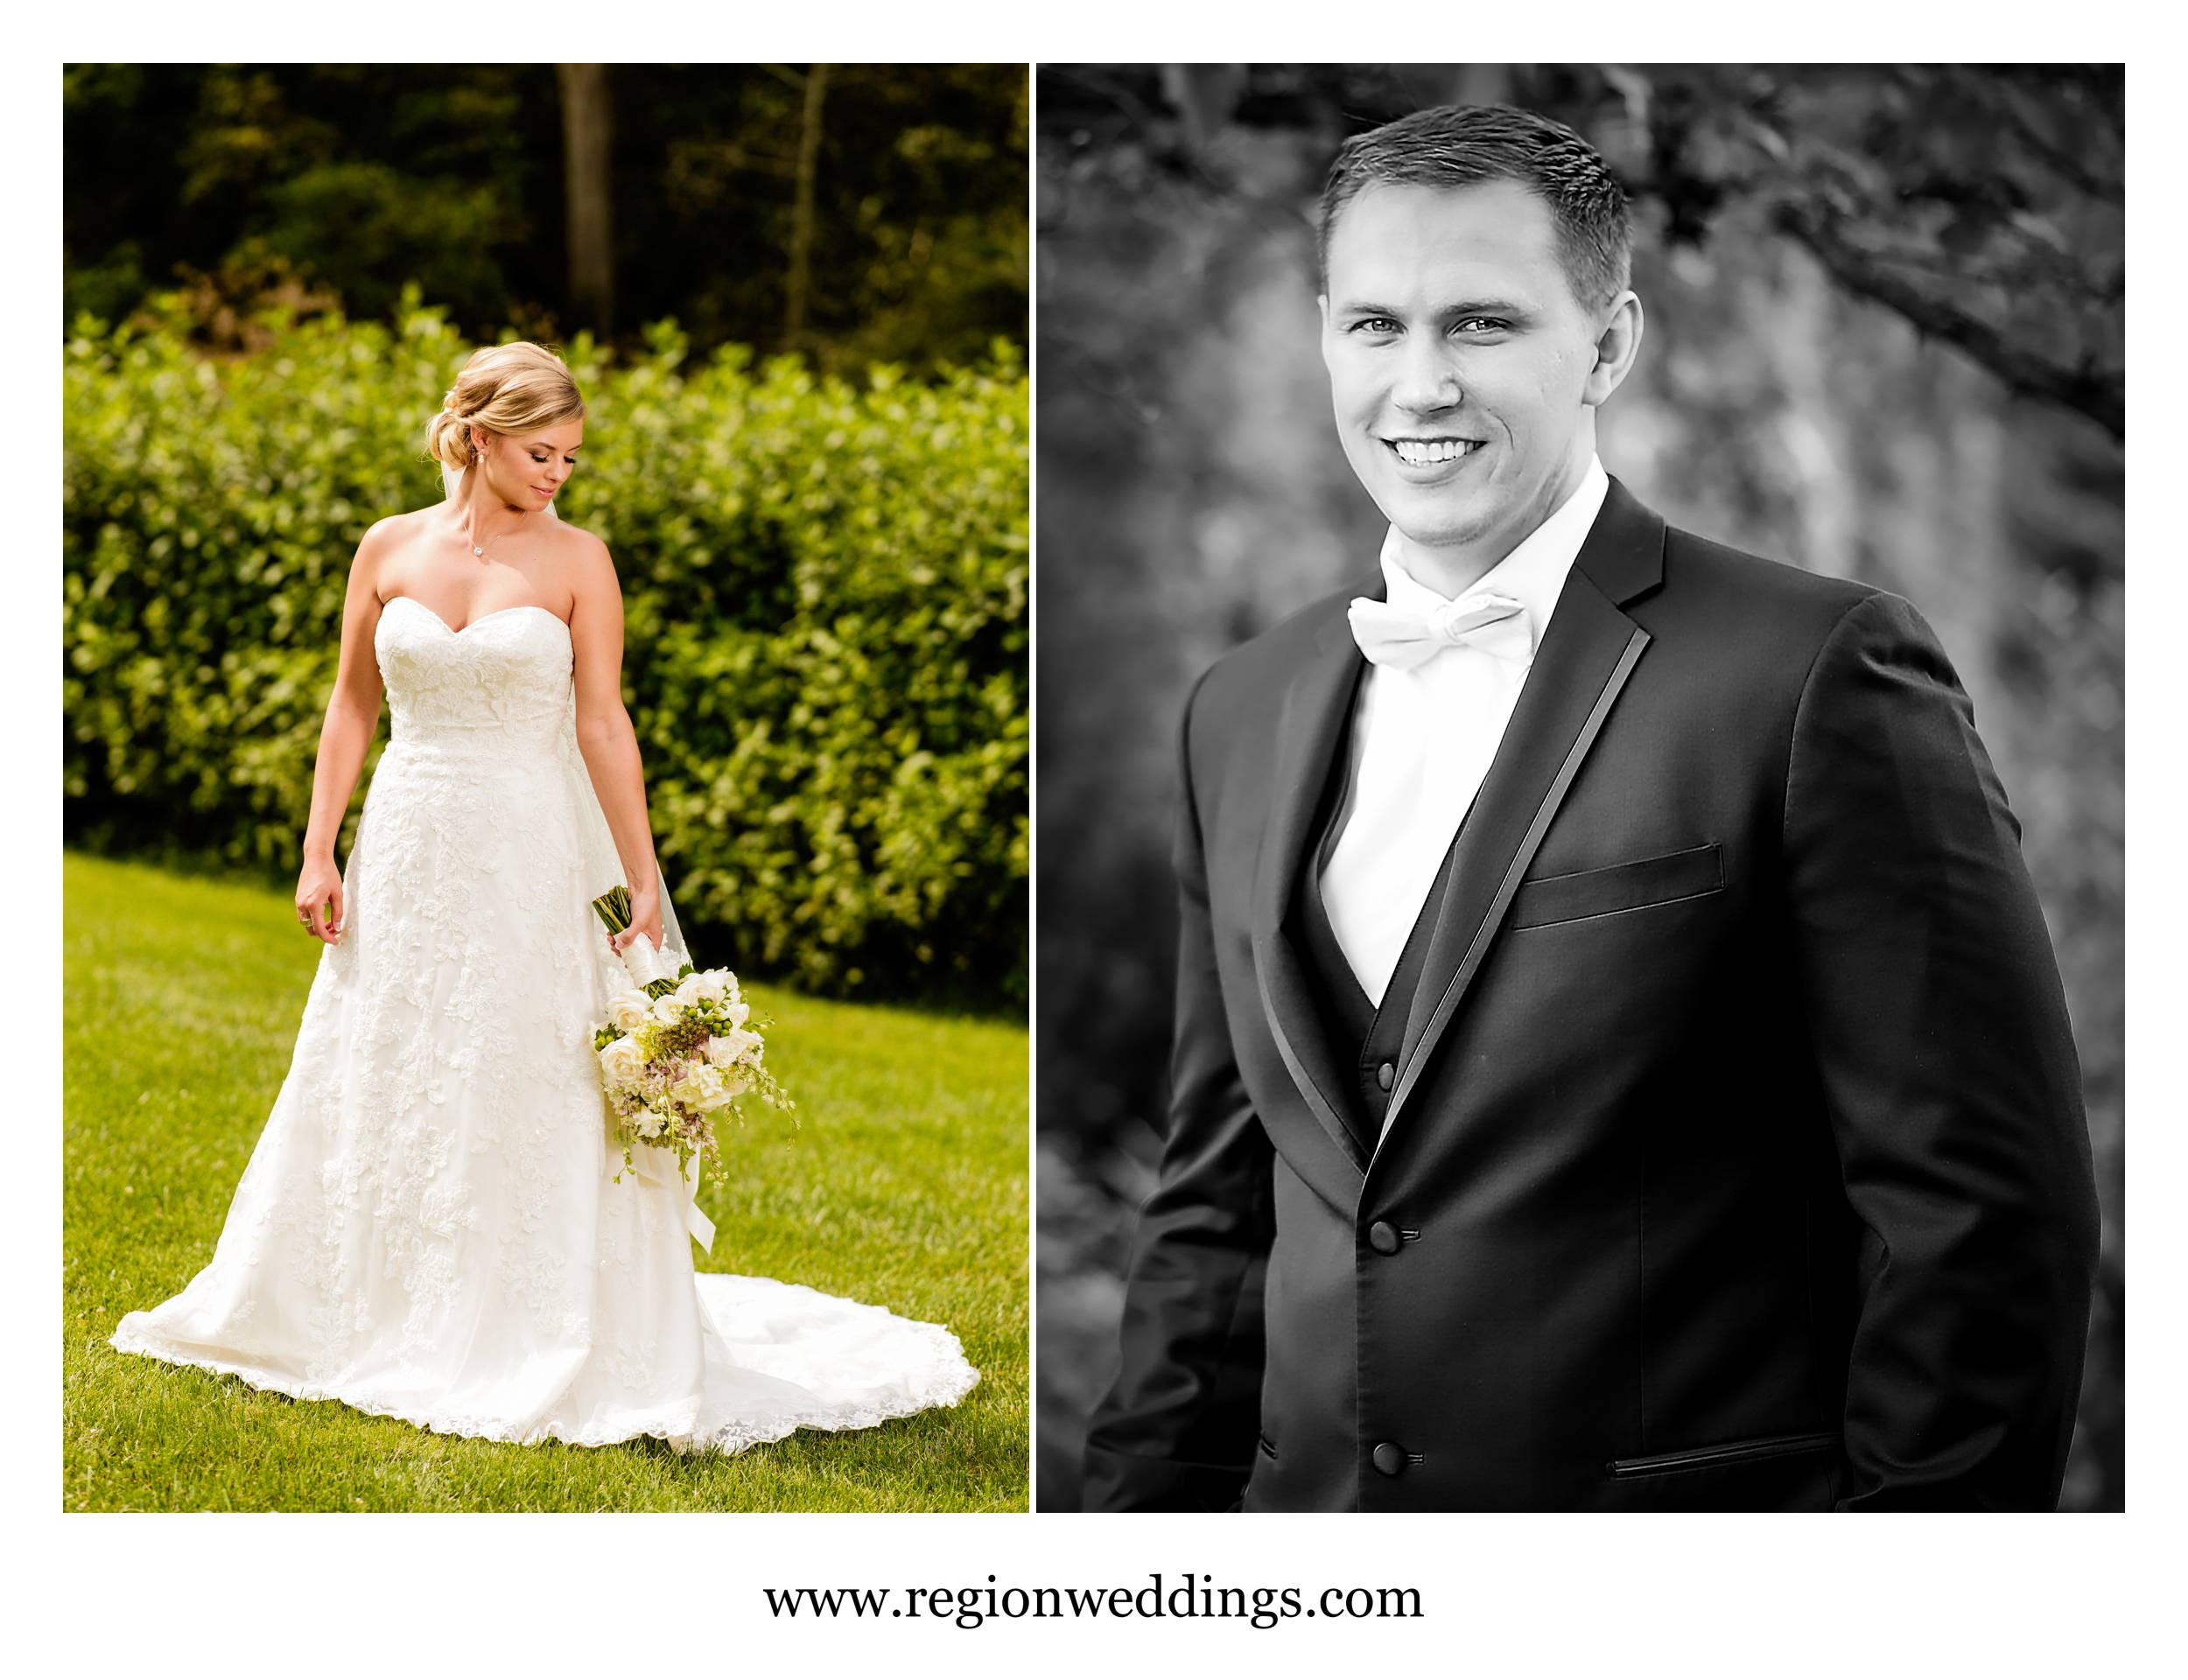 Portraits of the bride and groom at their summer wedding in Valparaiso, IN.